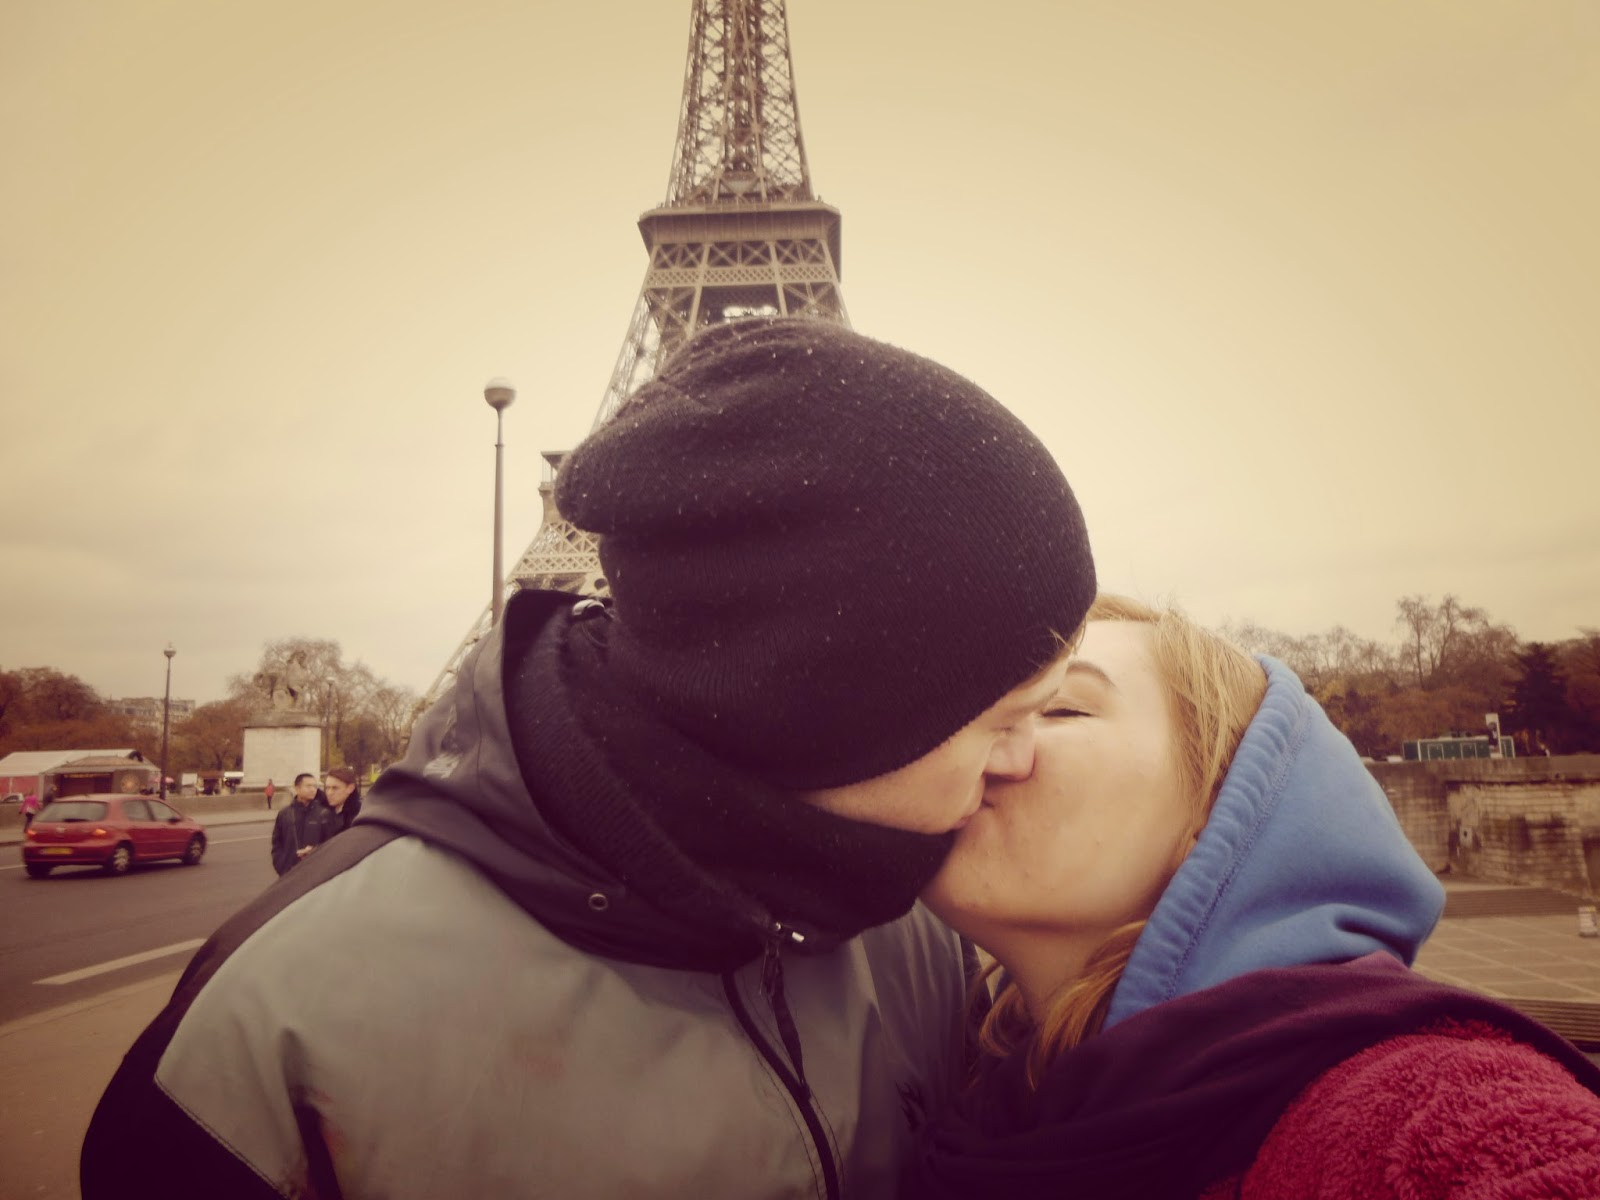 paris eiffel tower kiss